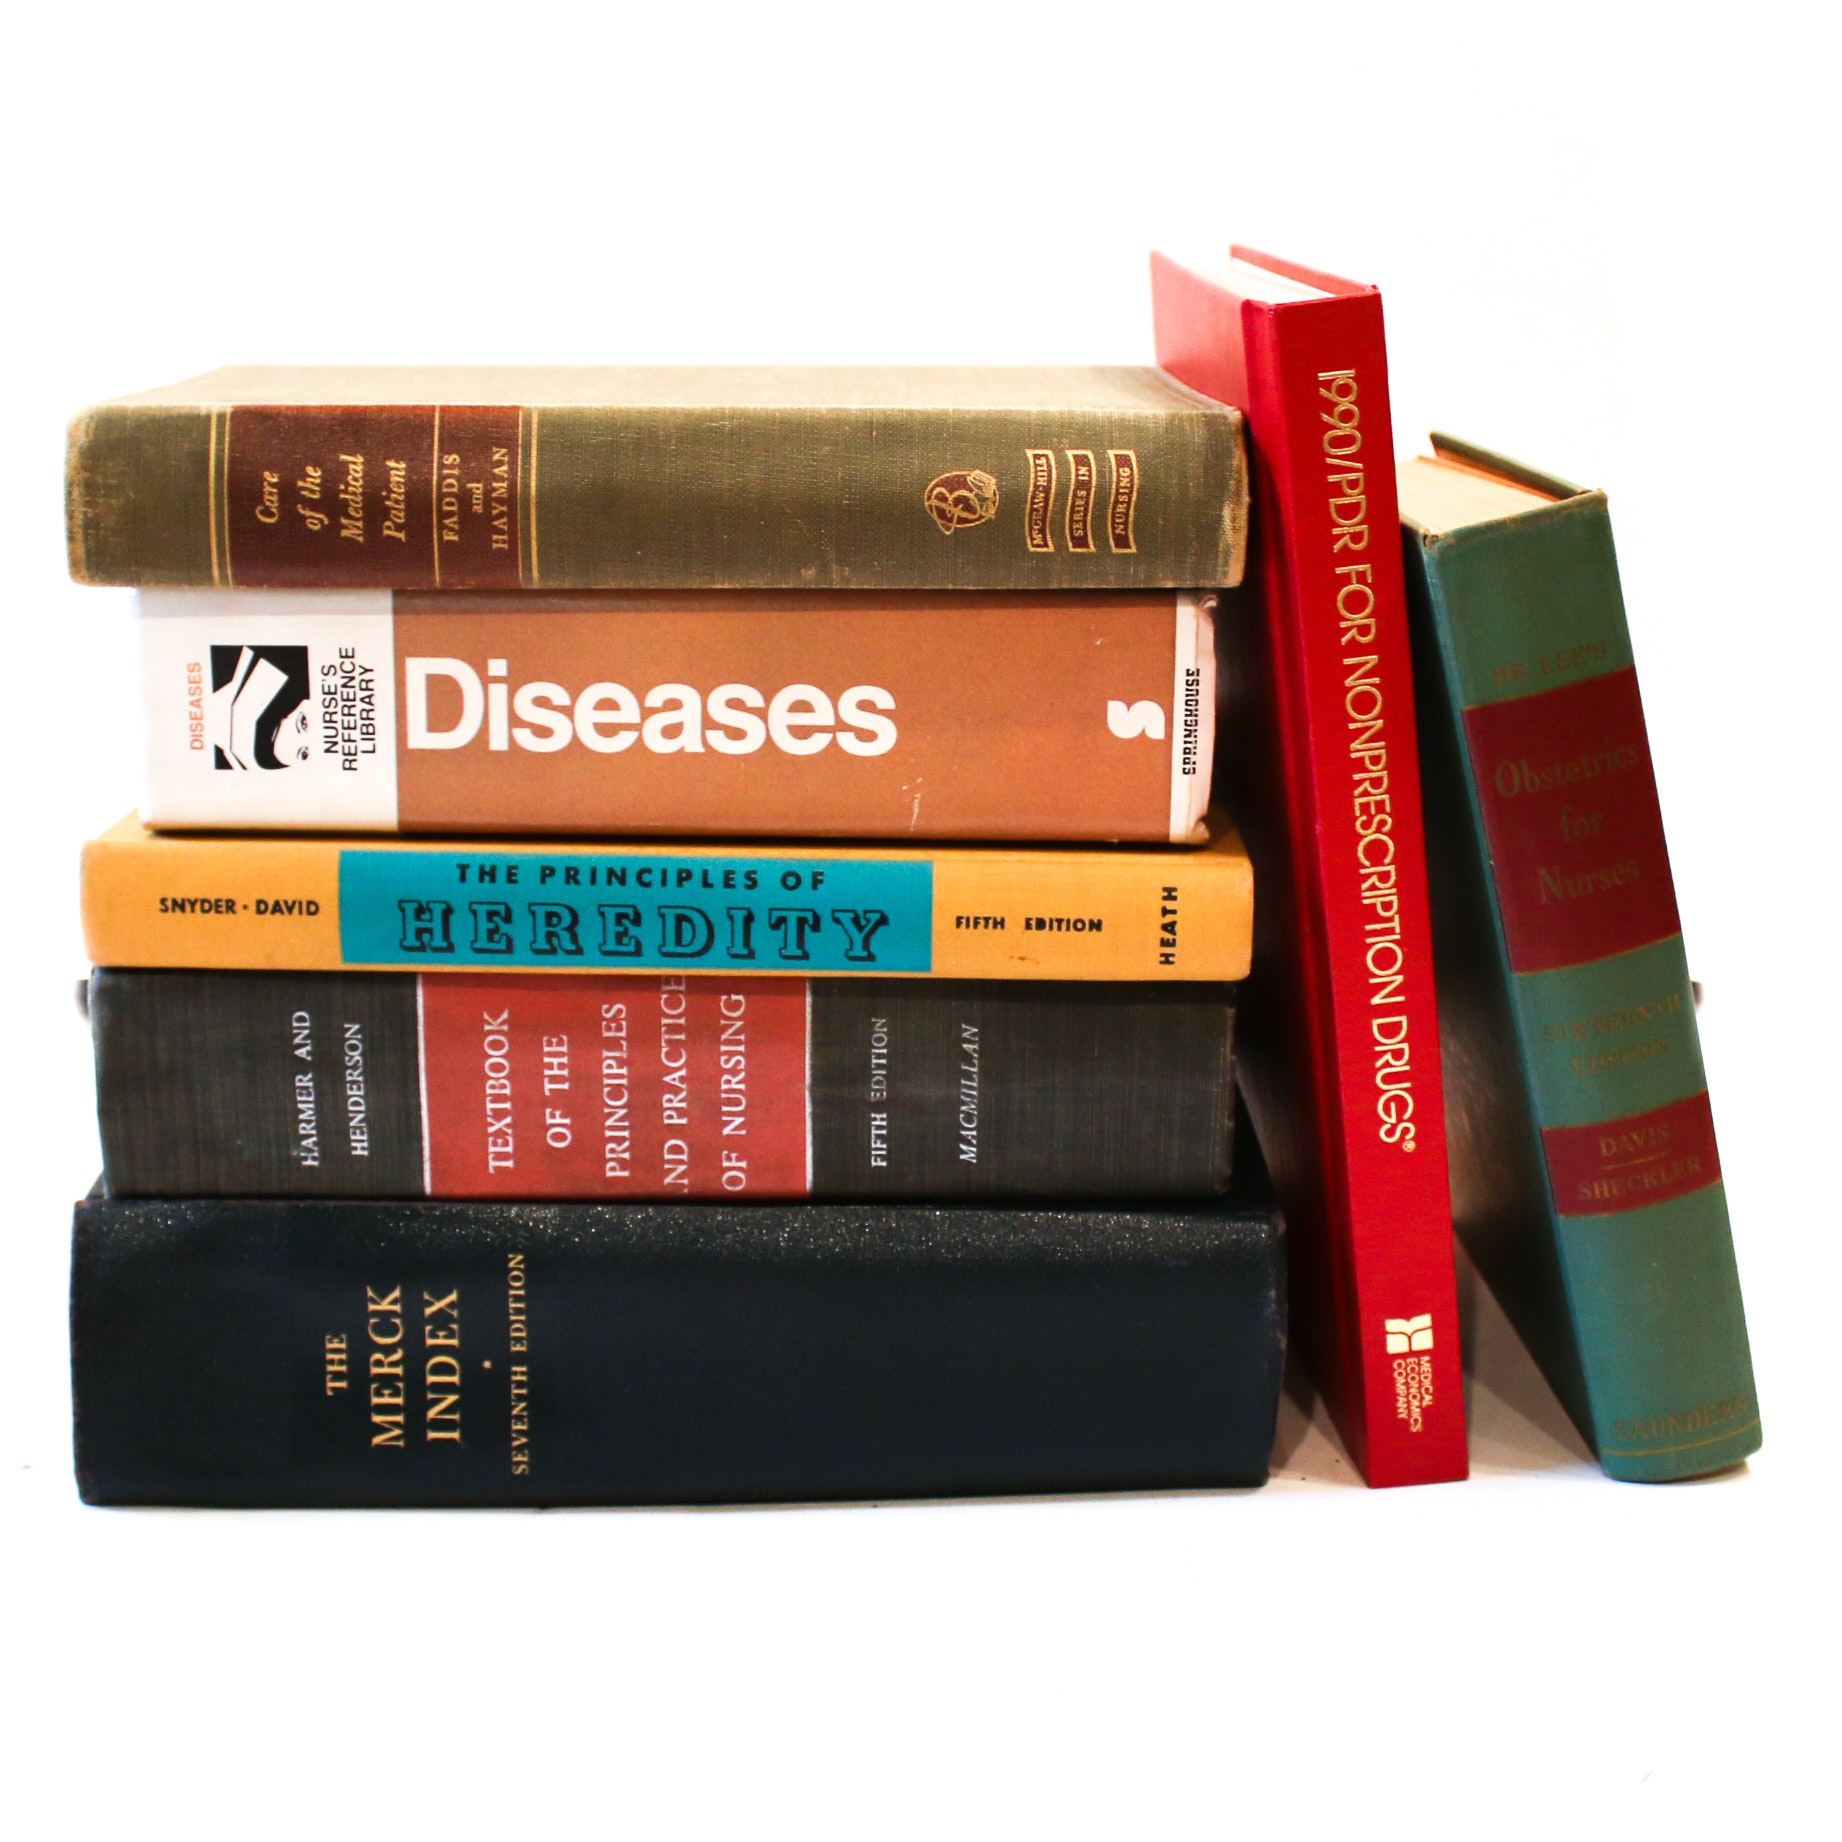 Medical Reference Books and Textbooks